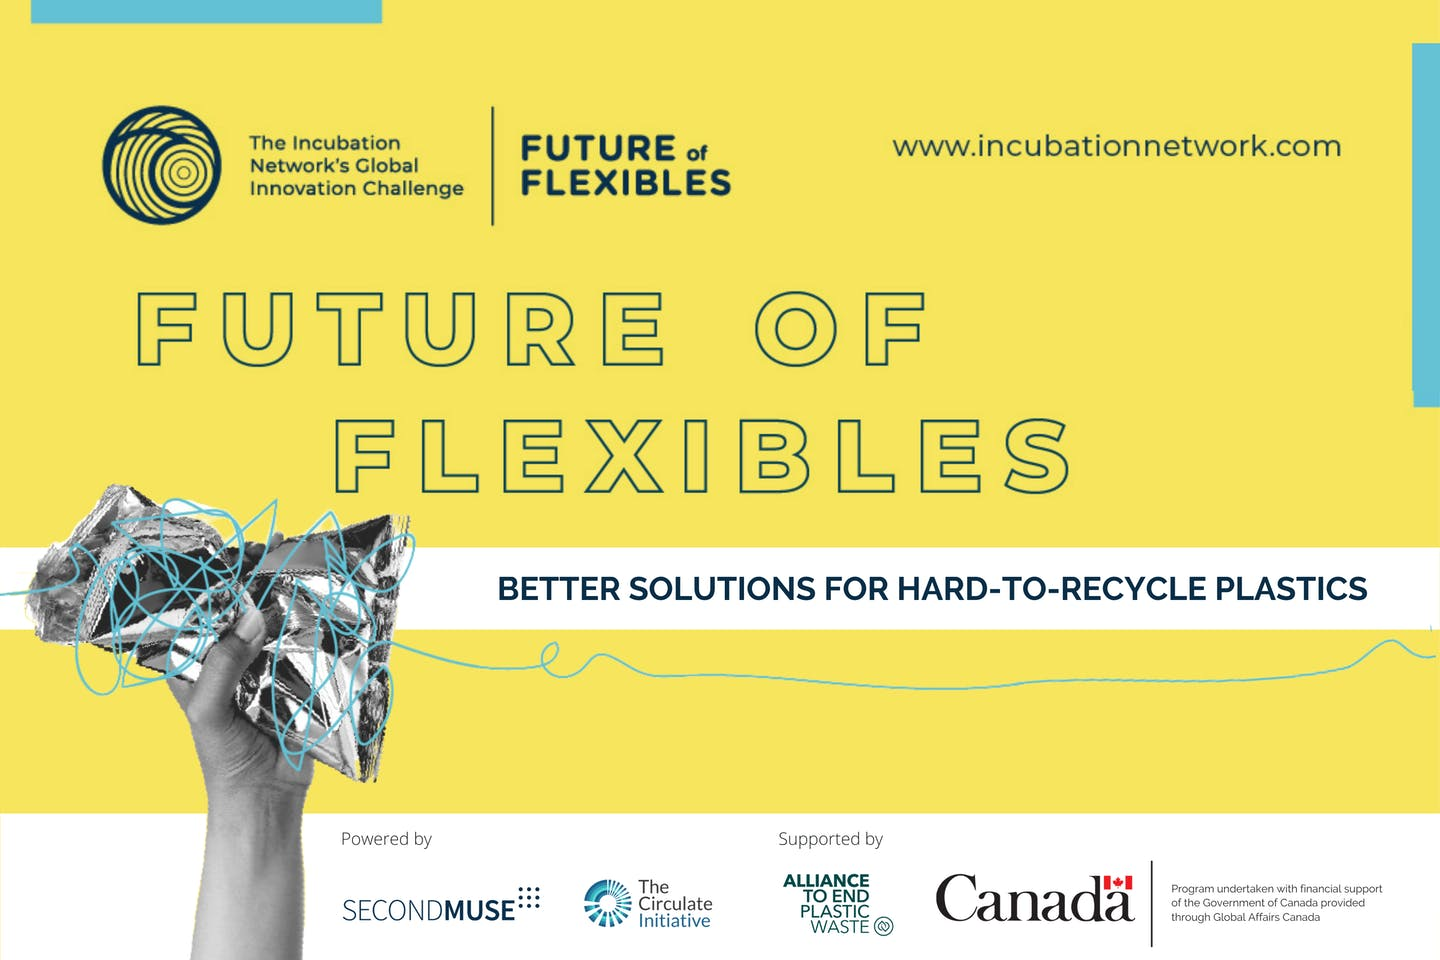 Ventures to receive growth support from The Incubation Network to tackle flexible plastic waste